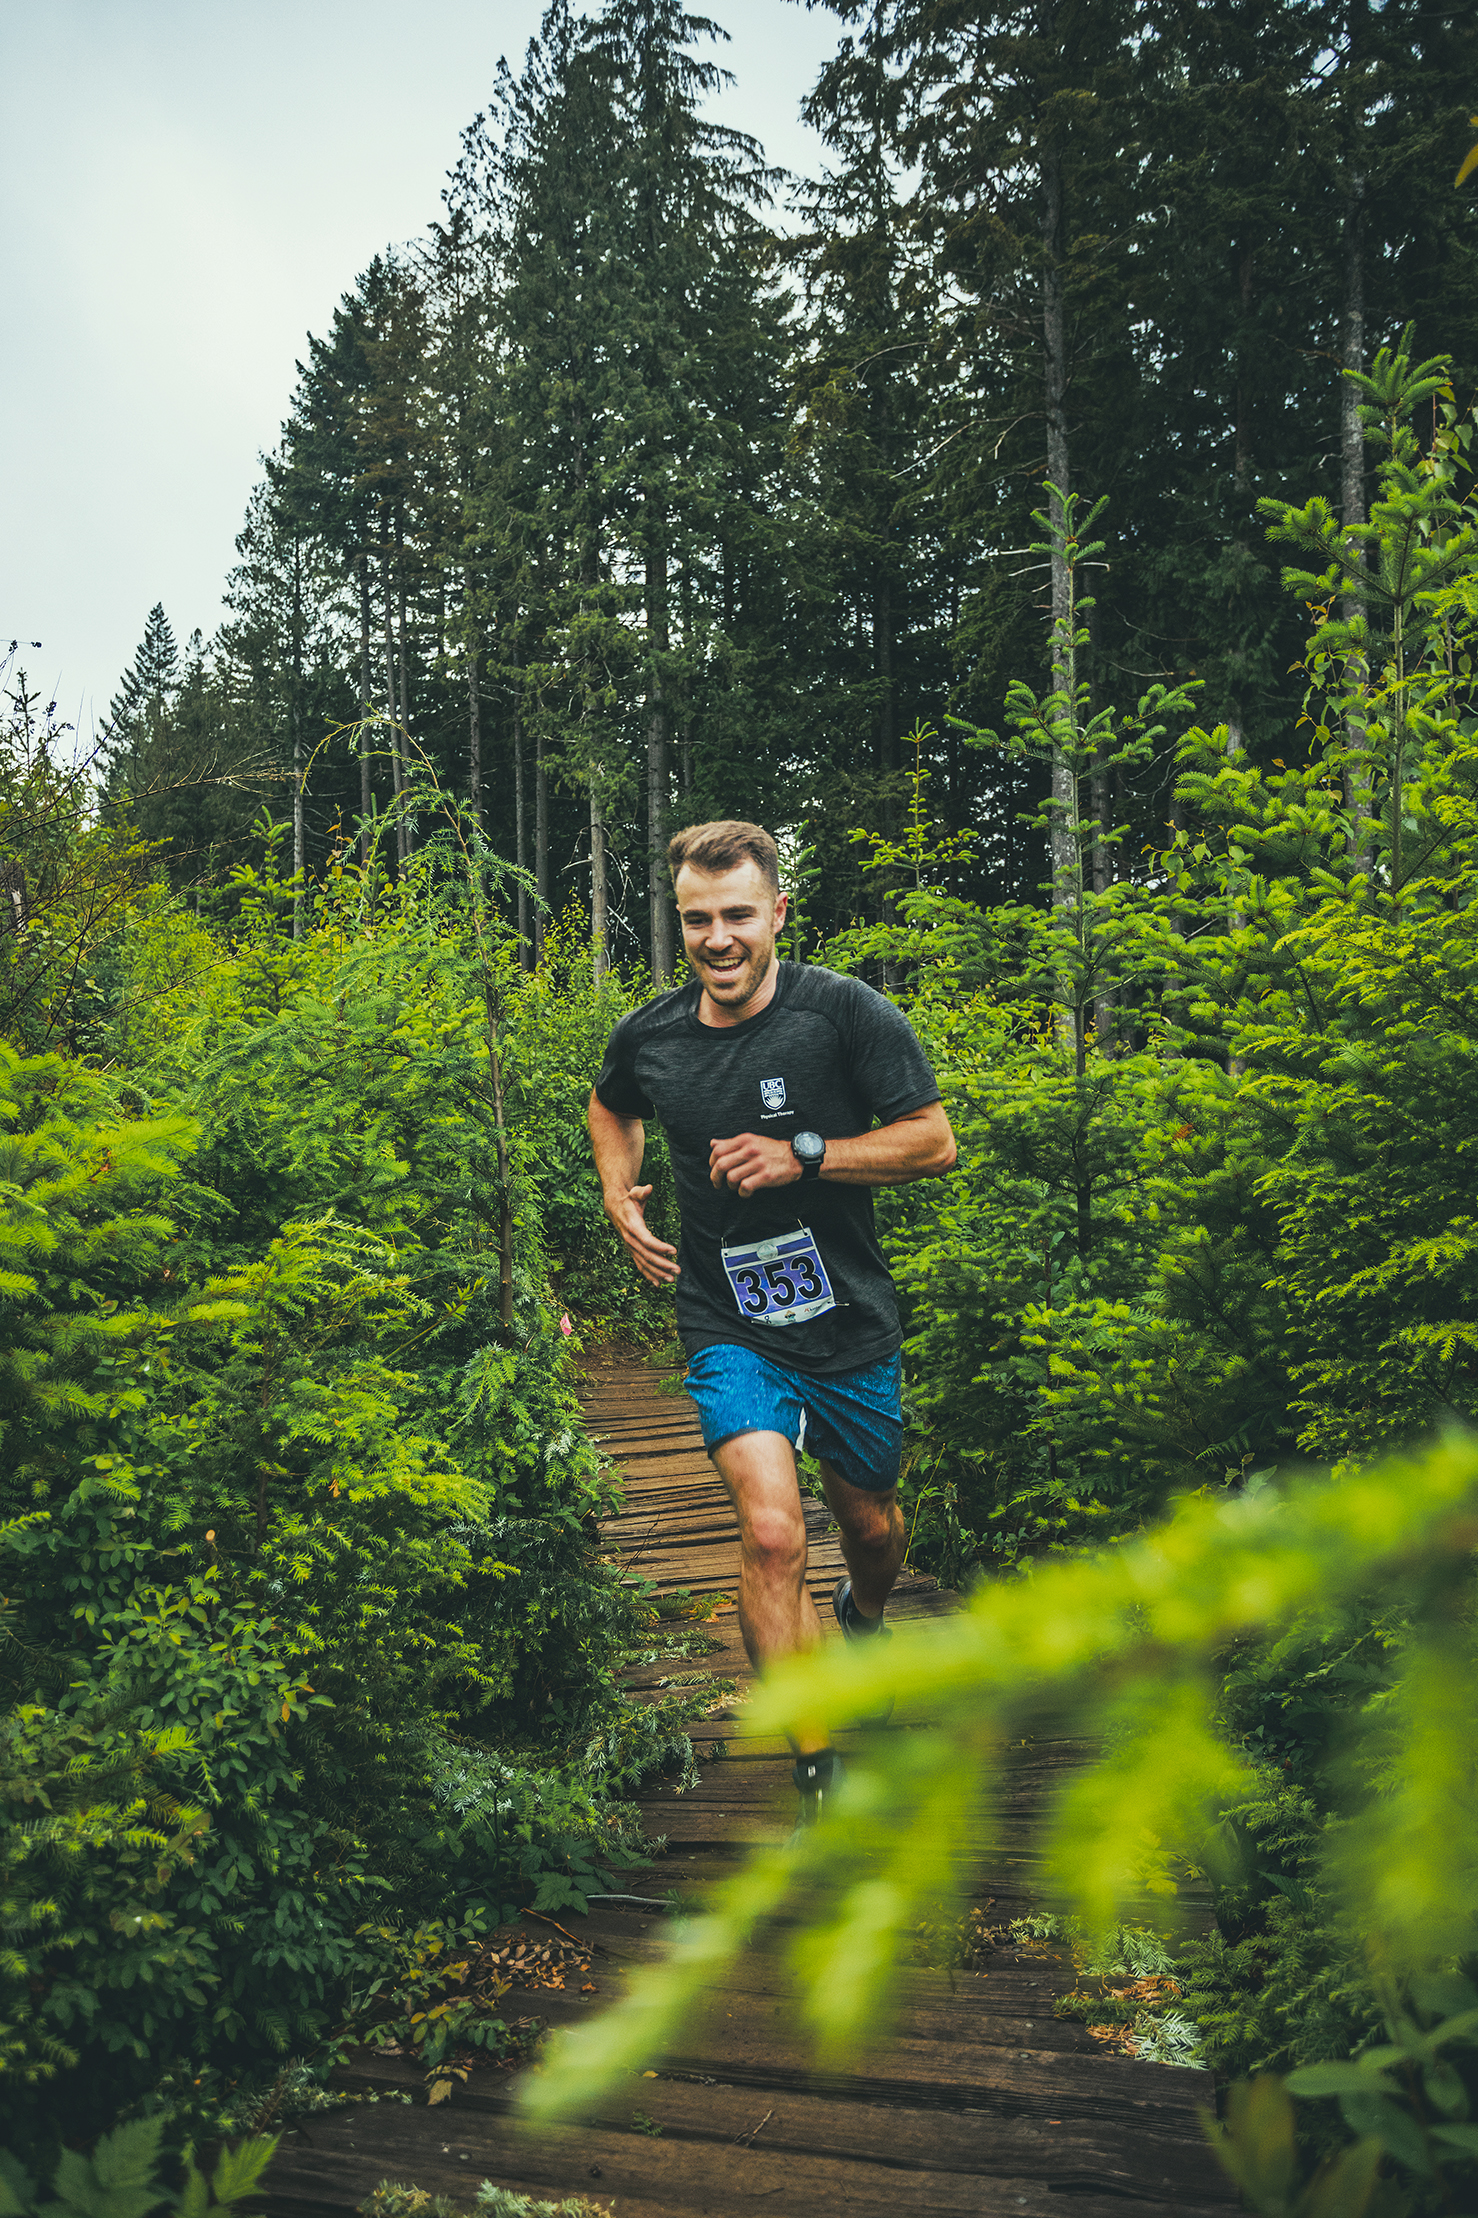 Fraser Valley Trail Races - Bear Mountain - IMG_1430 by Brice Ferre Studio - Vancouver Portrait Adventure and Athlete Photographer.jpg